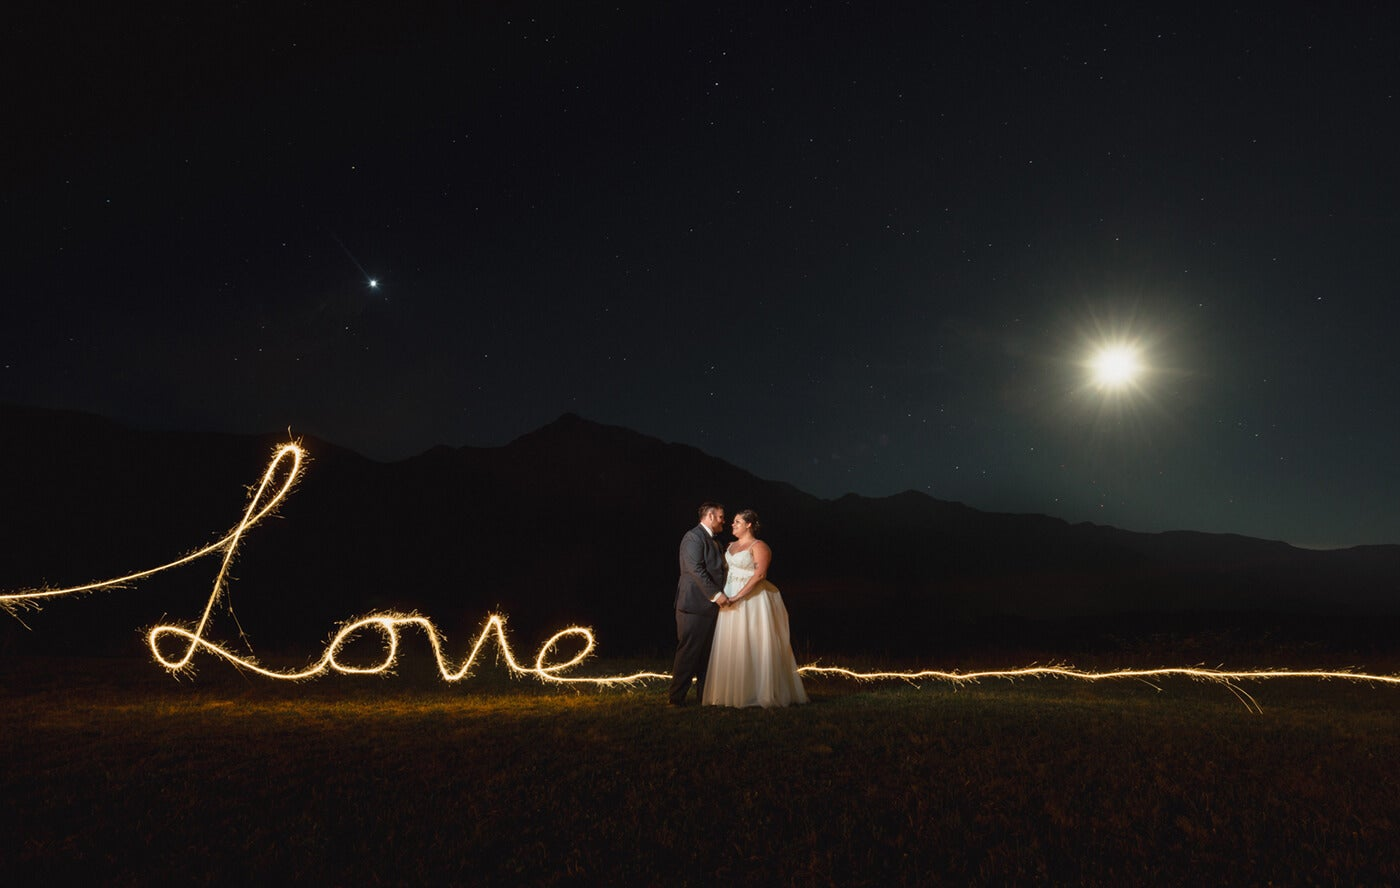 sparkler photography and wedding couple